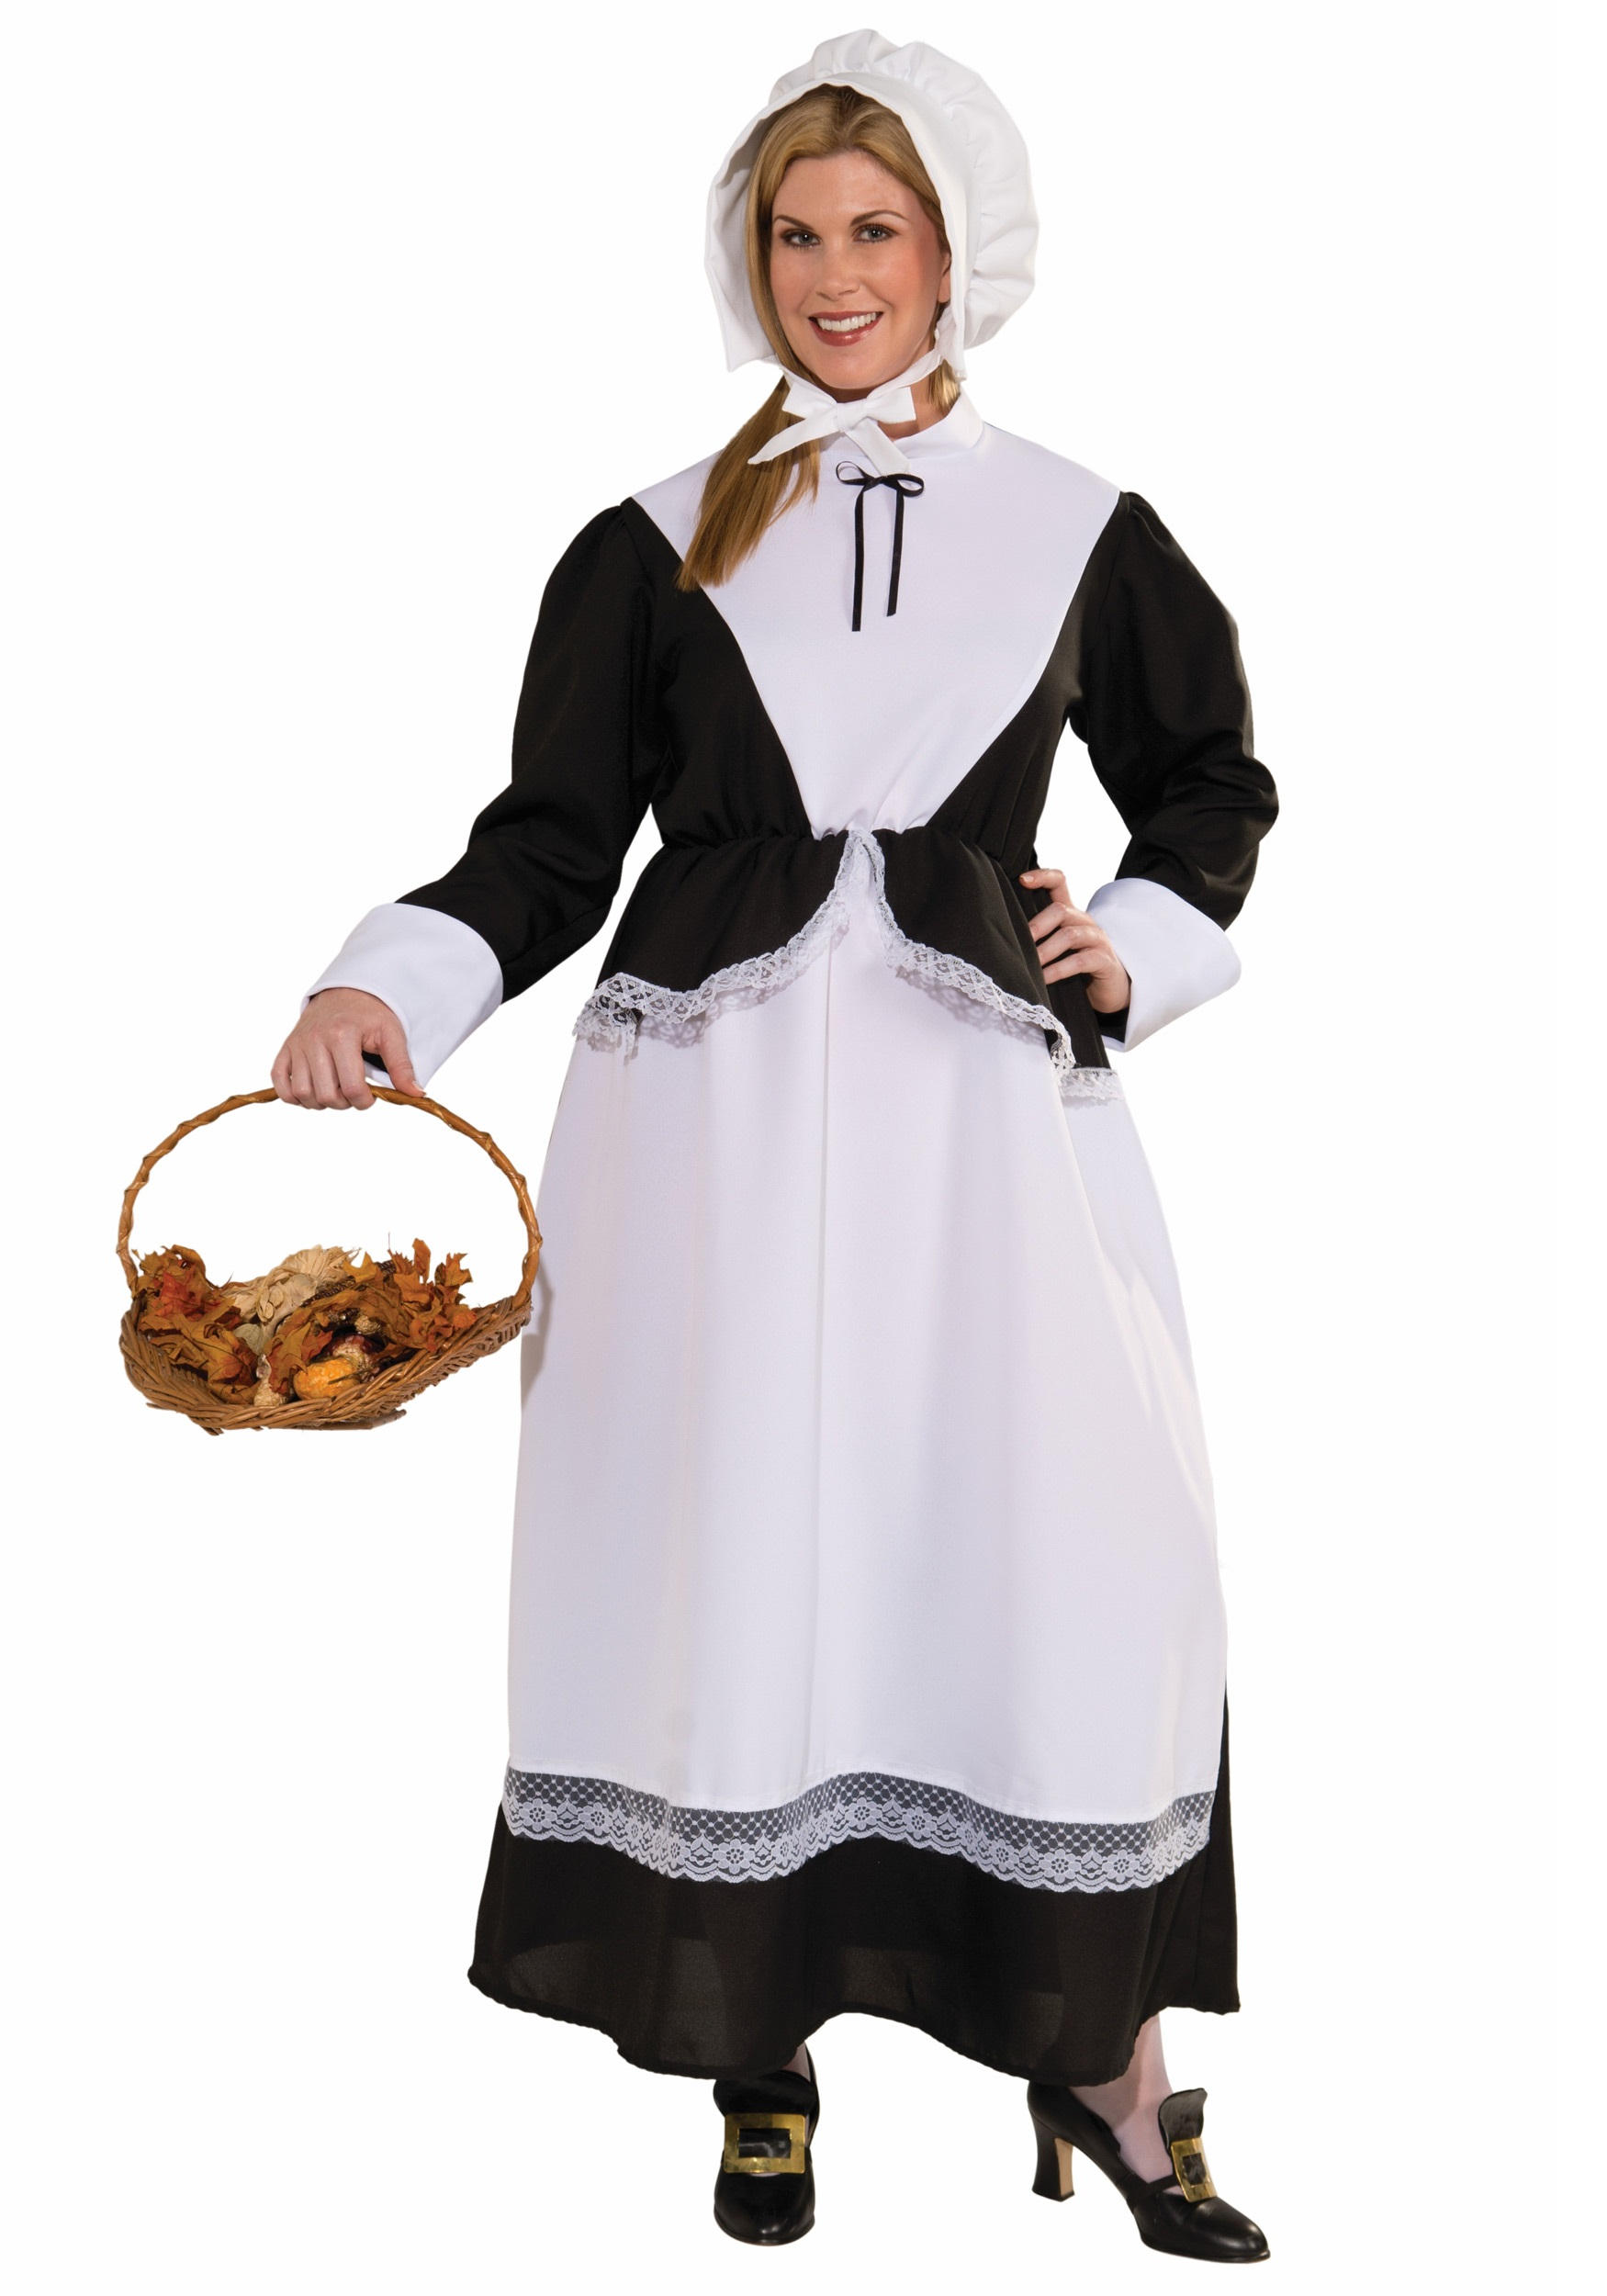 sc 1 st  Halloween Costumes & Plus Size Pilgrim Woman Costume